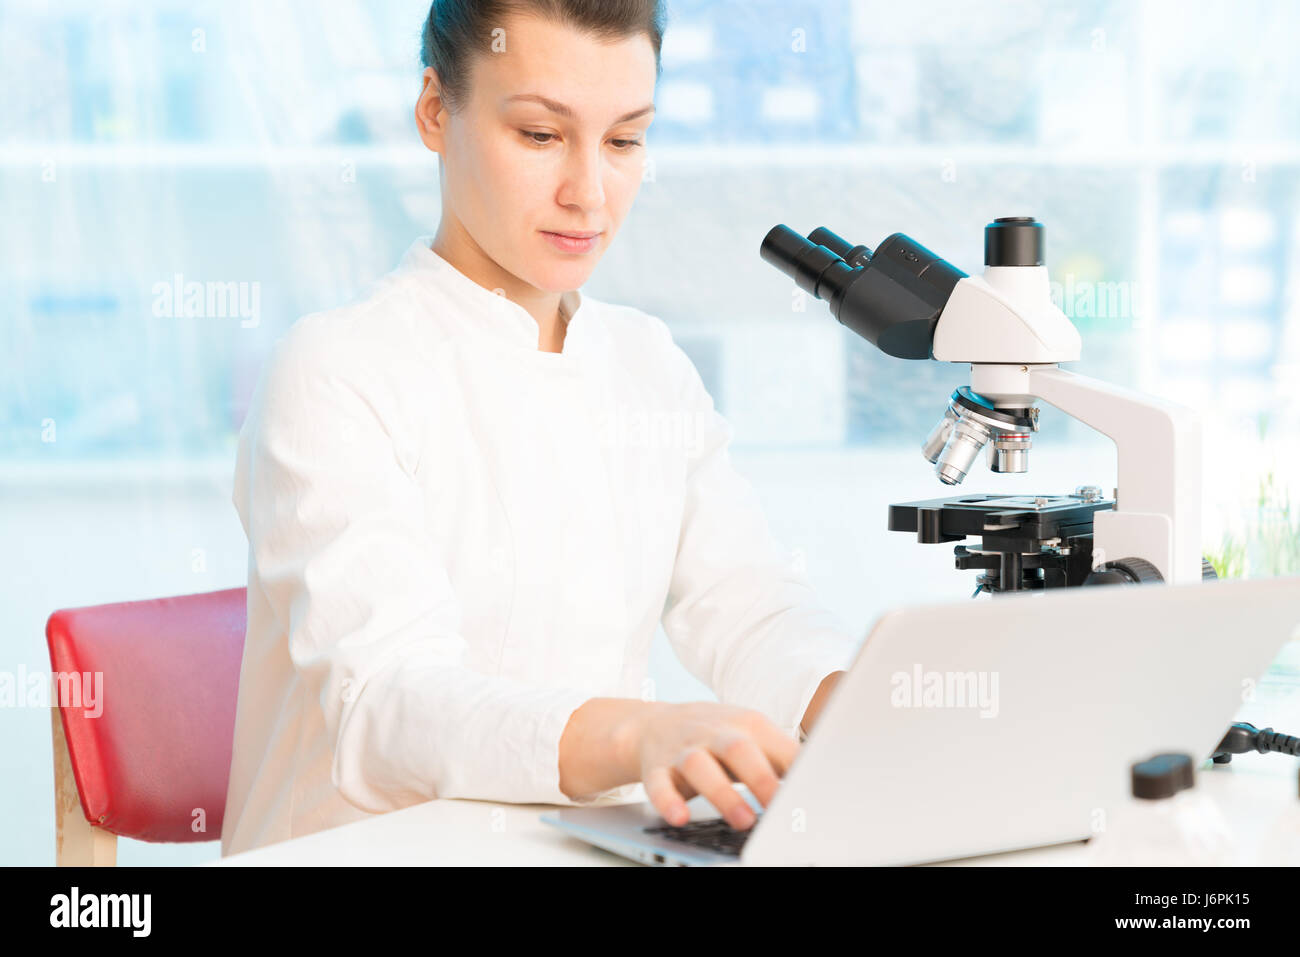 Food test in laboratory, Researcher with GMO plants. Genetically modified organism or GEO here transgenic plant - Stock Image